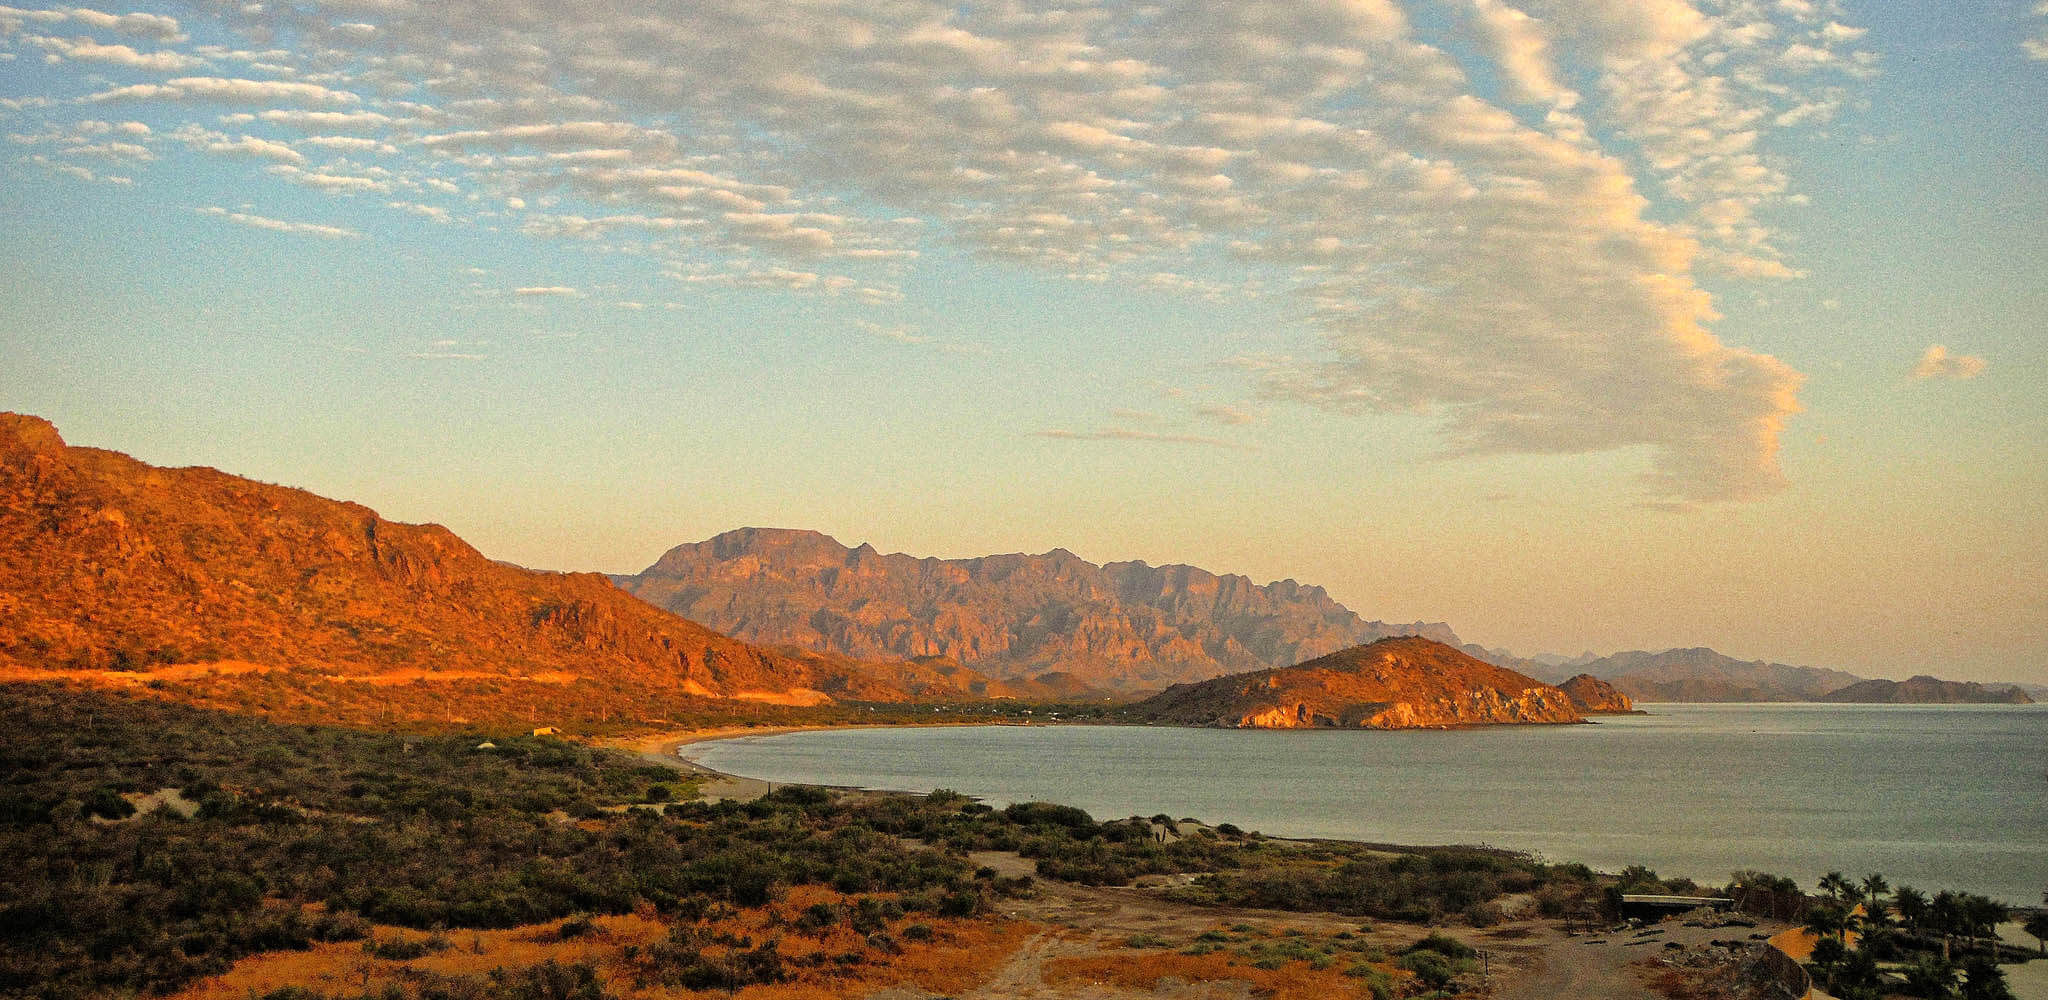 Visit Islands of Loreto